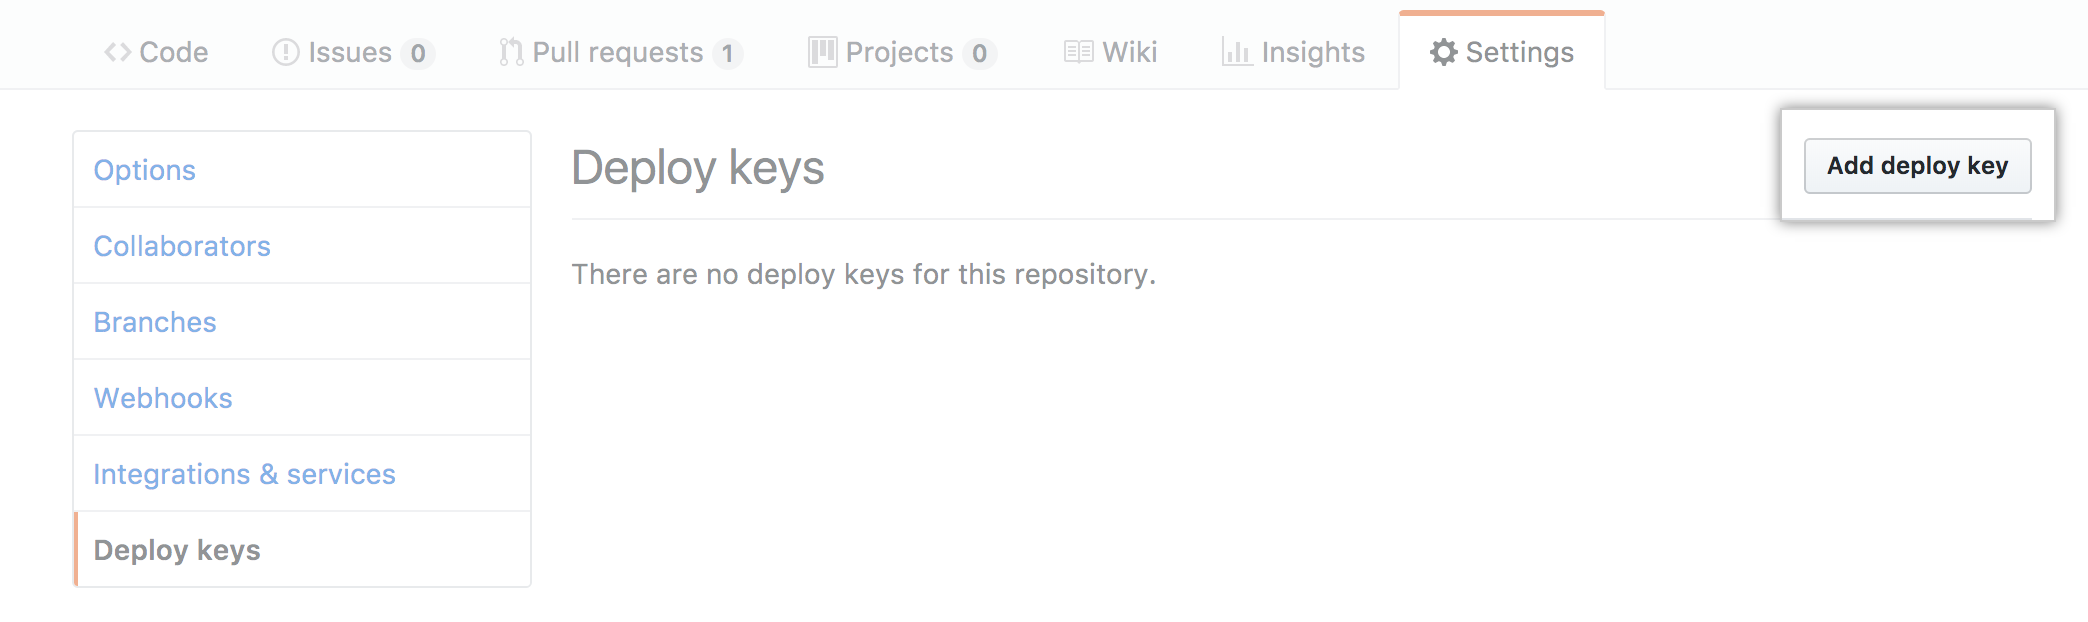 Add Deploy Keys link